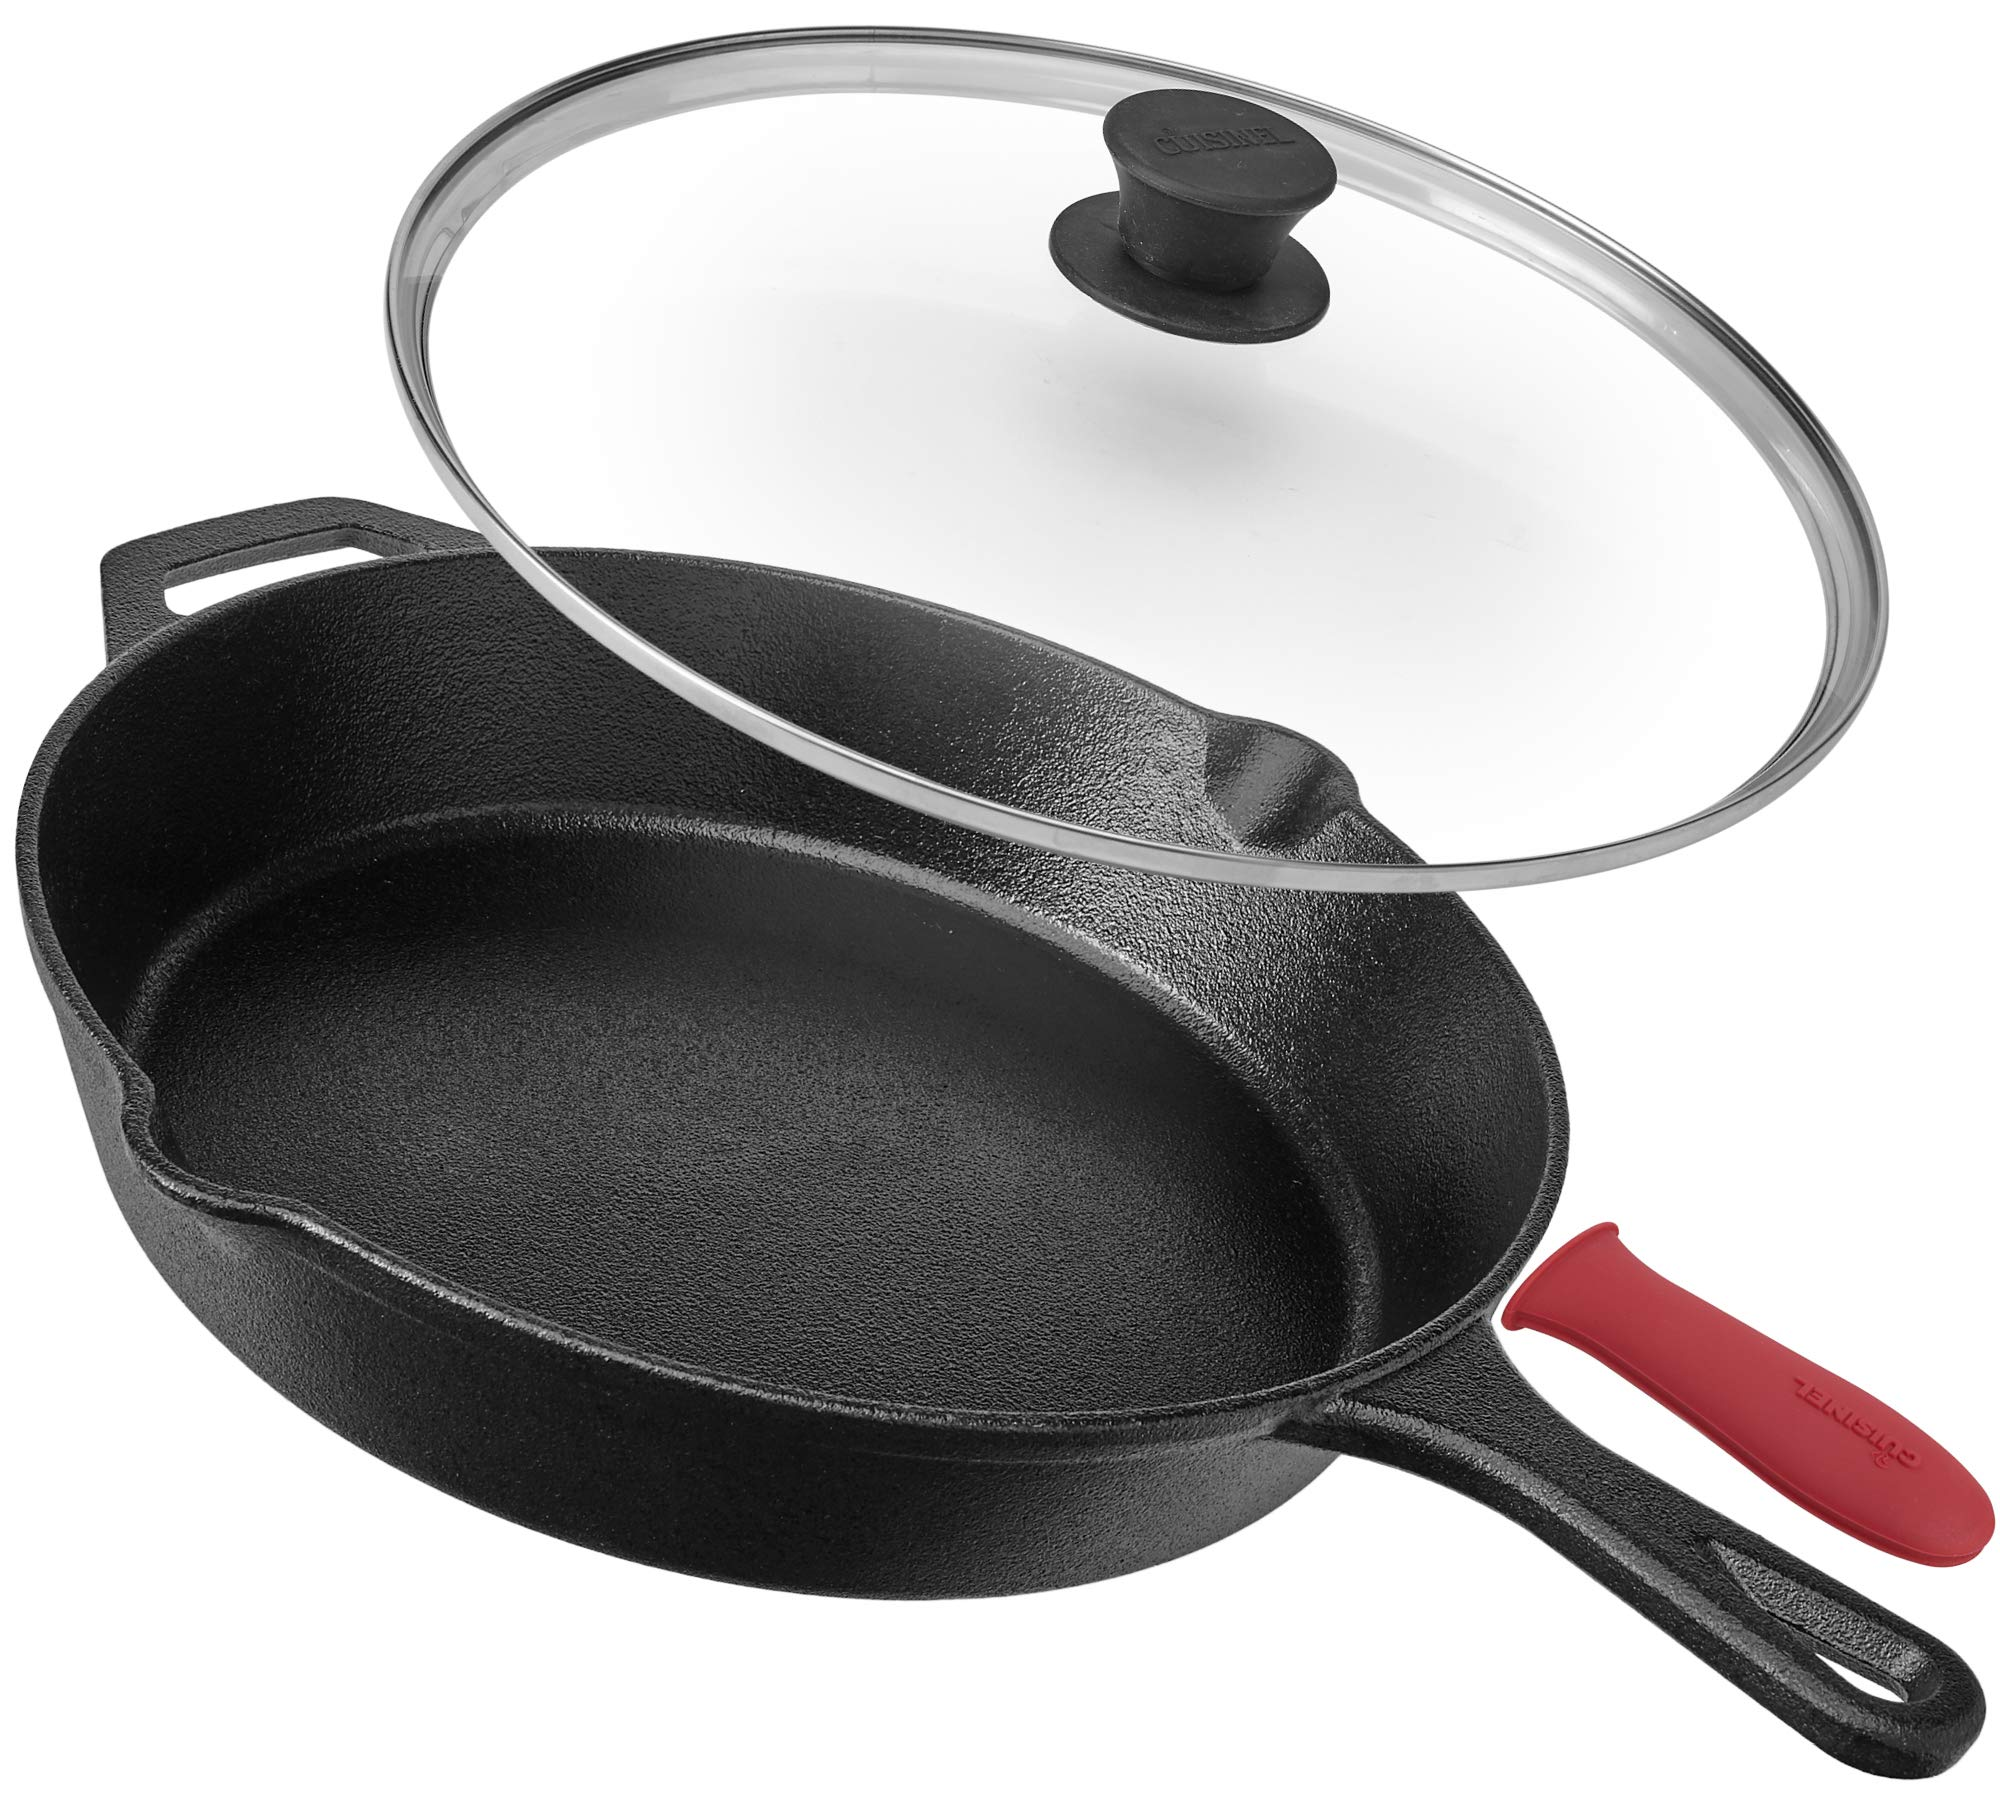 cuisinel Pre-Seasoned Cast Iron Skillet (12-Inch) W/Tempered Glass Lid and Handle, 12 Inch, Black